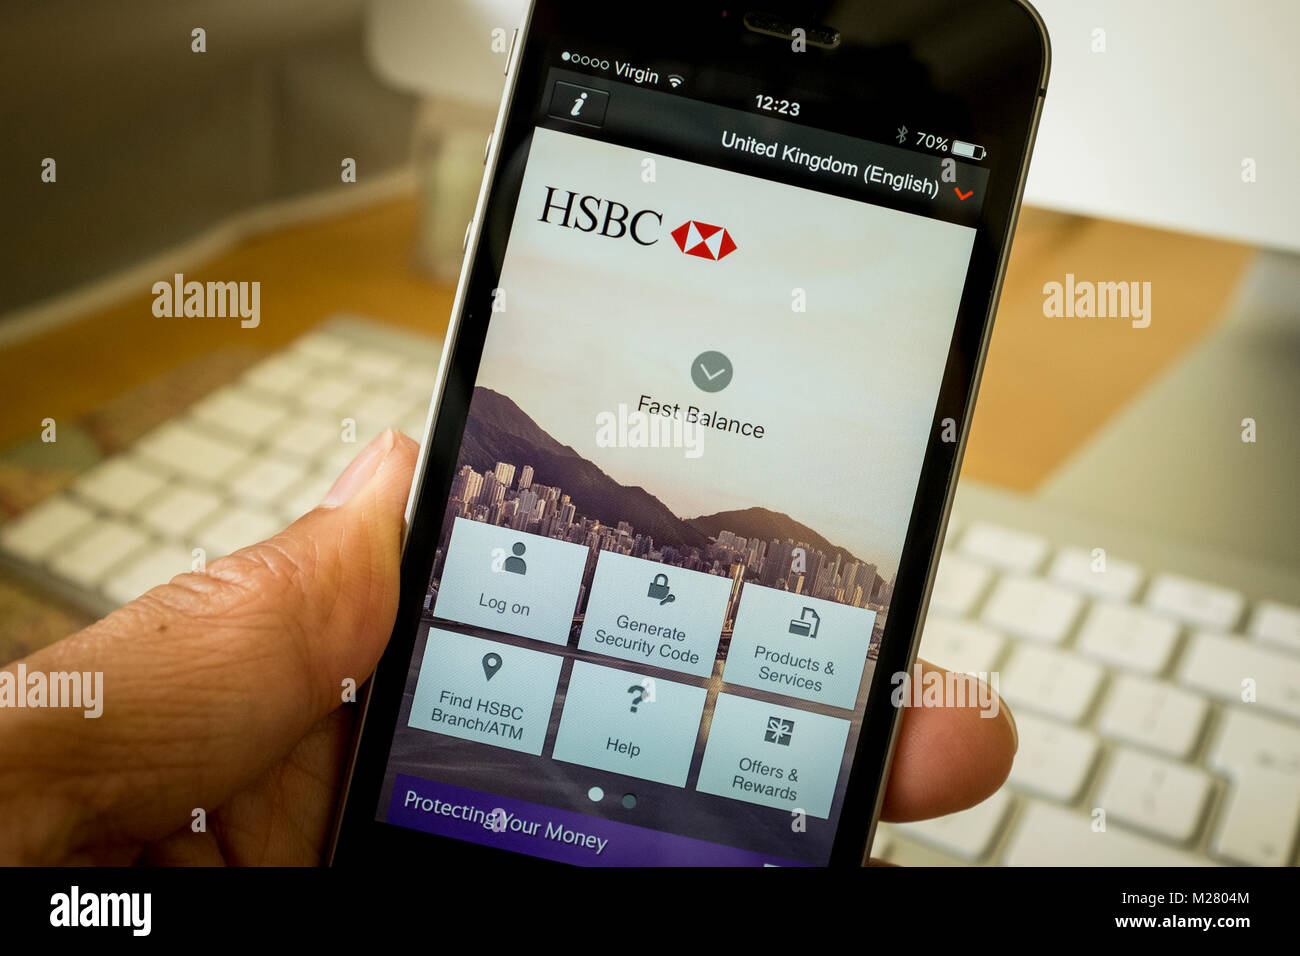 Hsbc App Stock Photos & Hsbc App Stock Images - Alamy